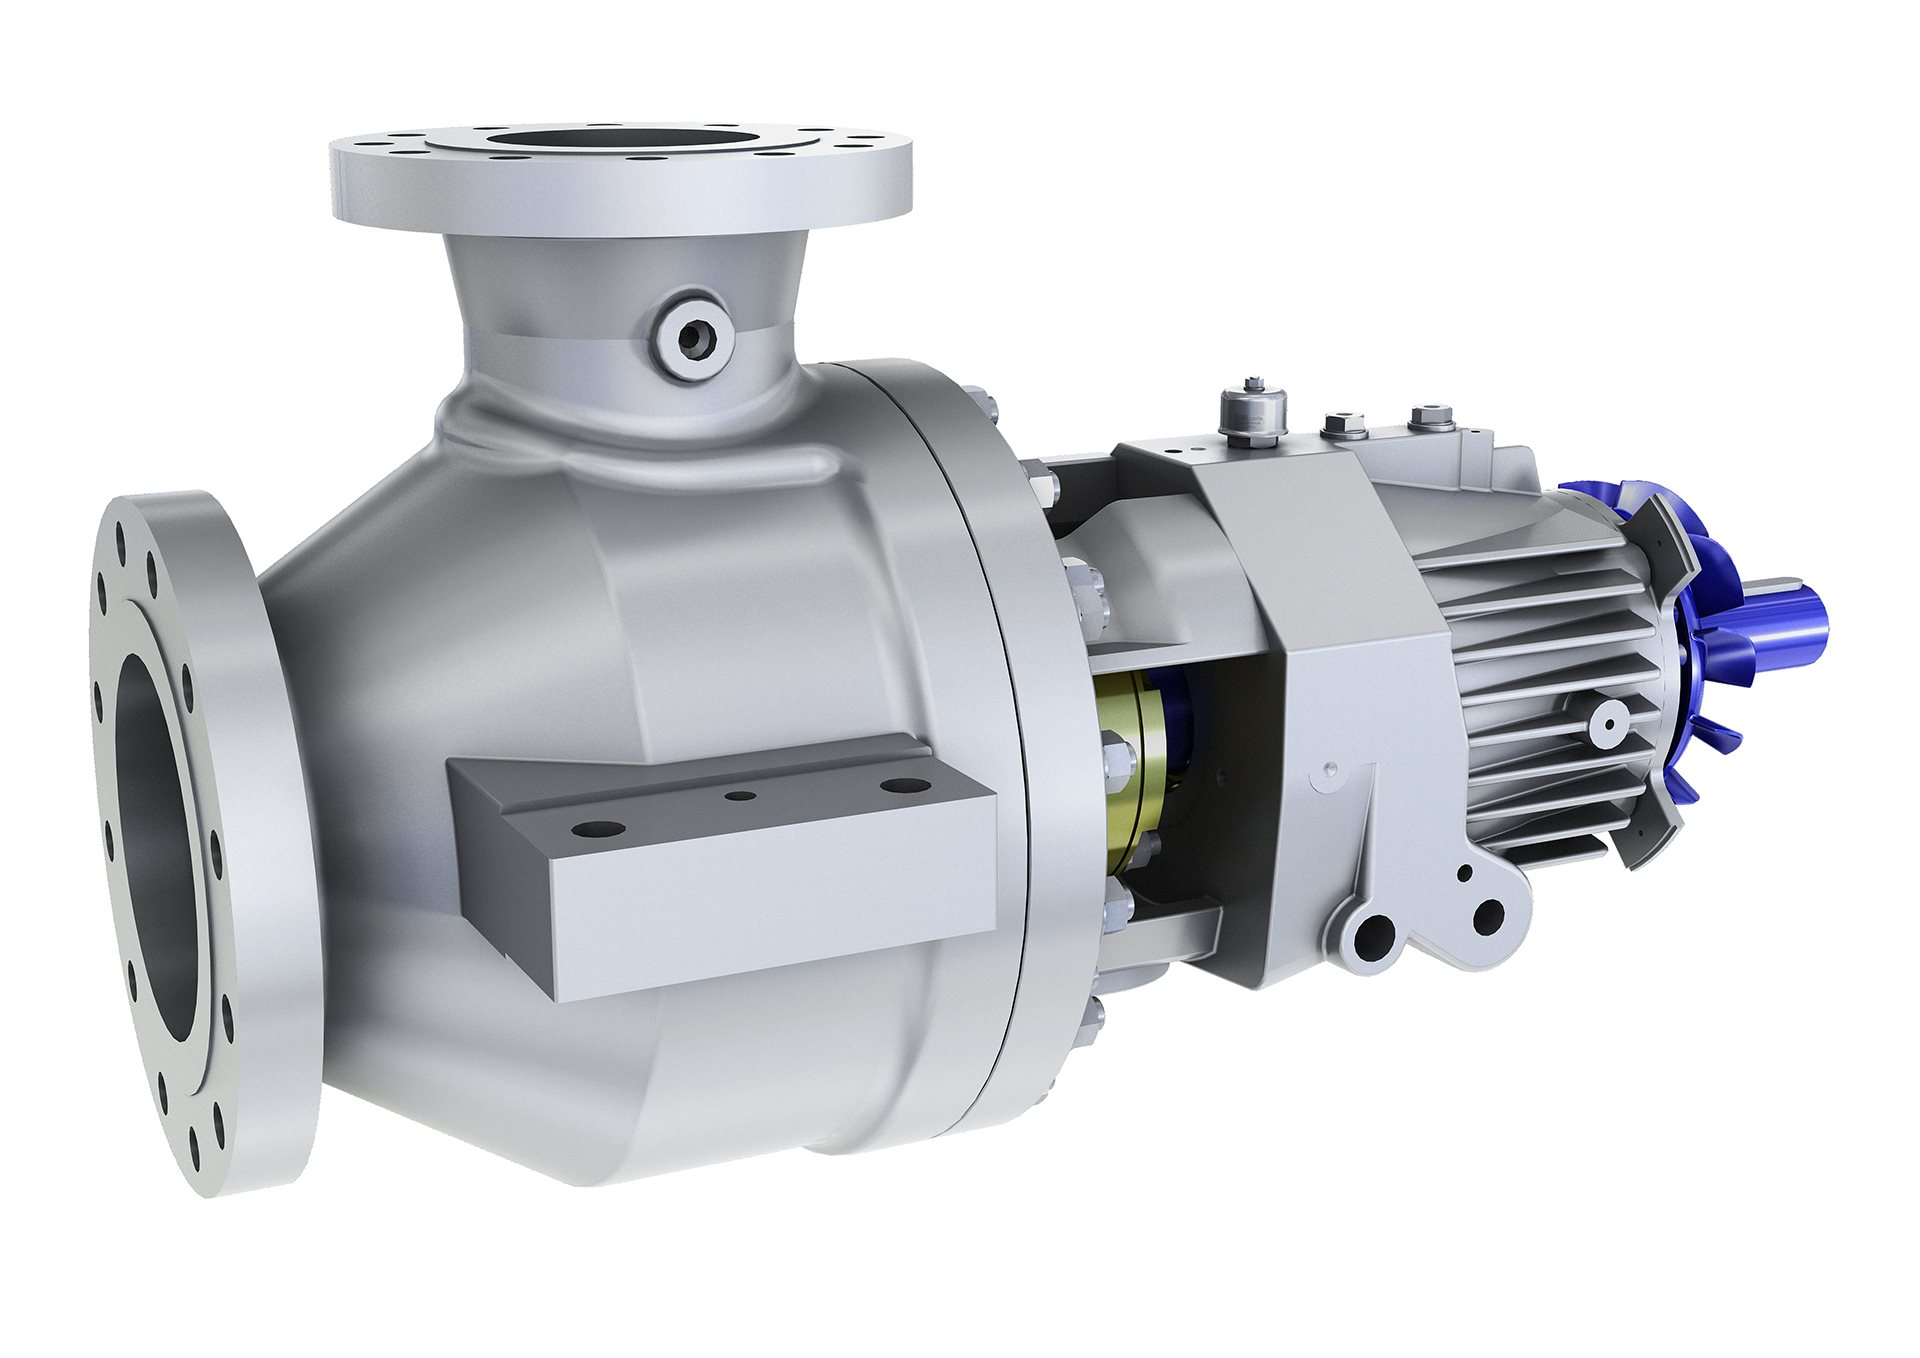 MPP-OHH Single Stage Multiphase Pump